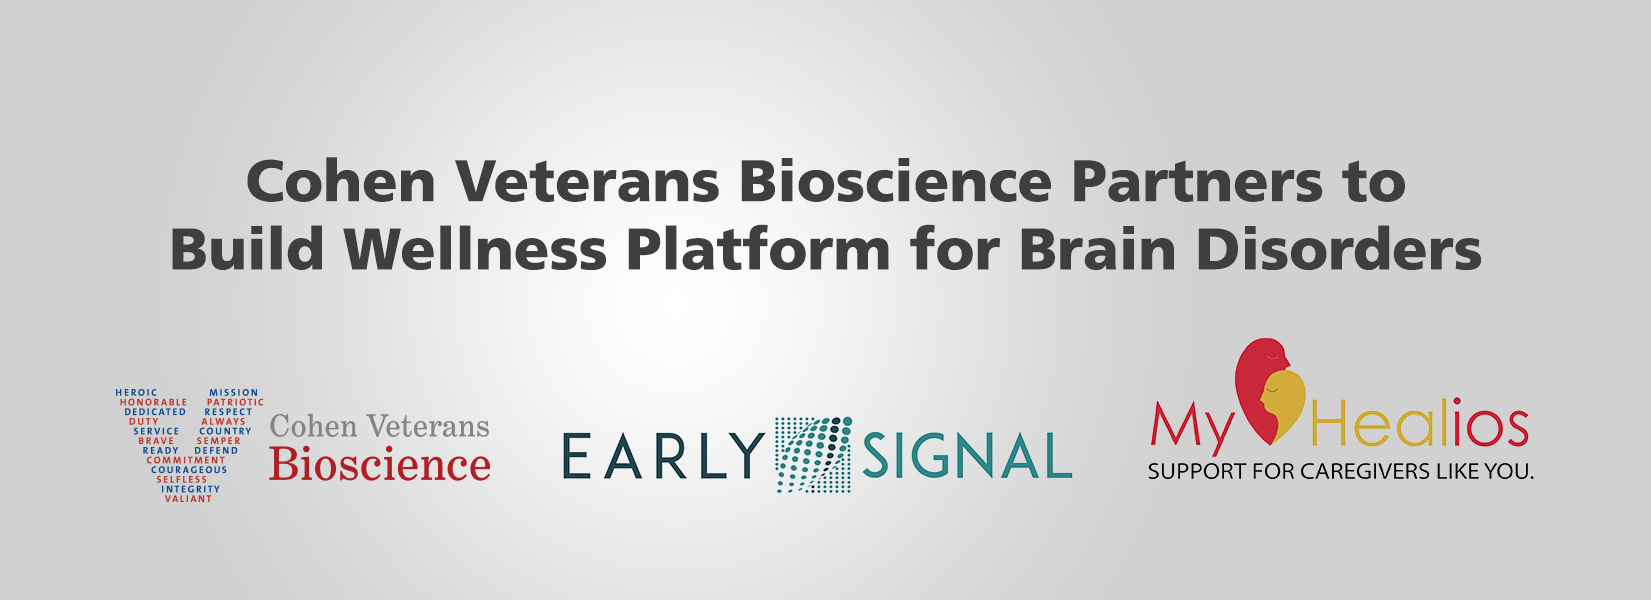 Cohen Veterans Bioscience Partners to Build Wellness Platform for Brain Disorders